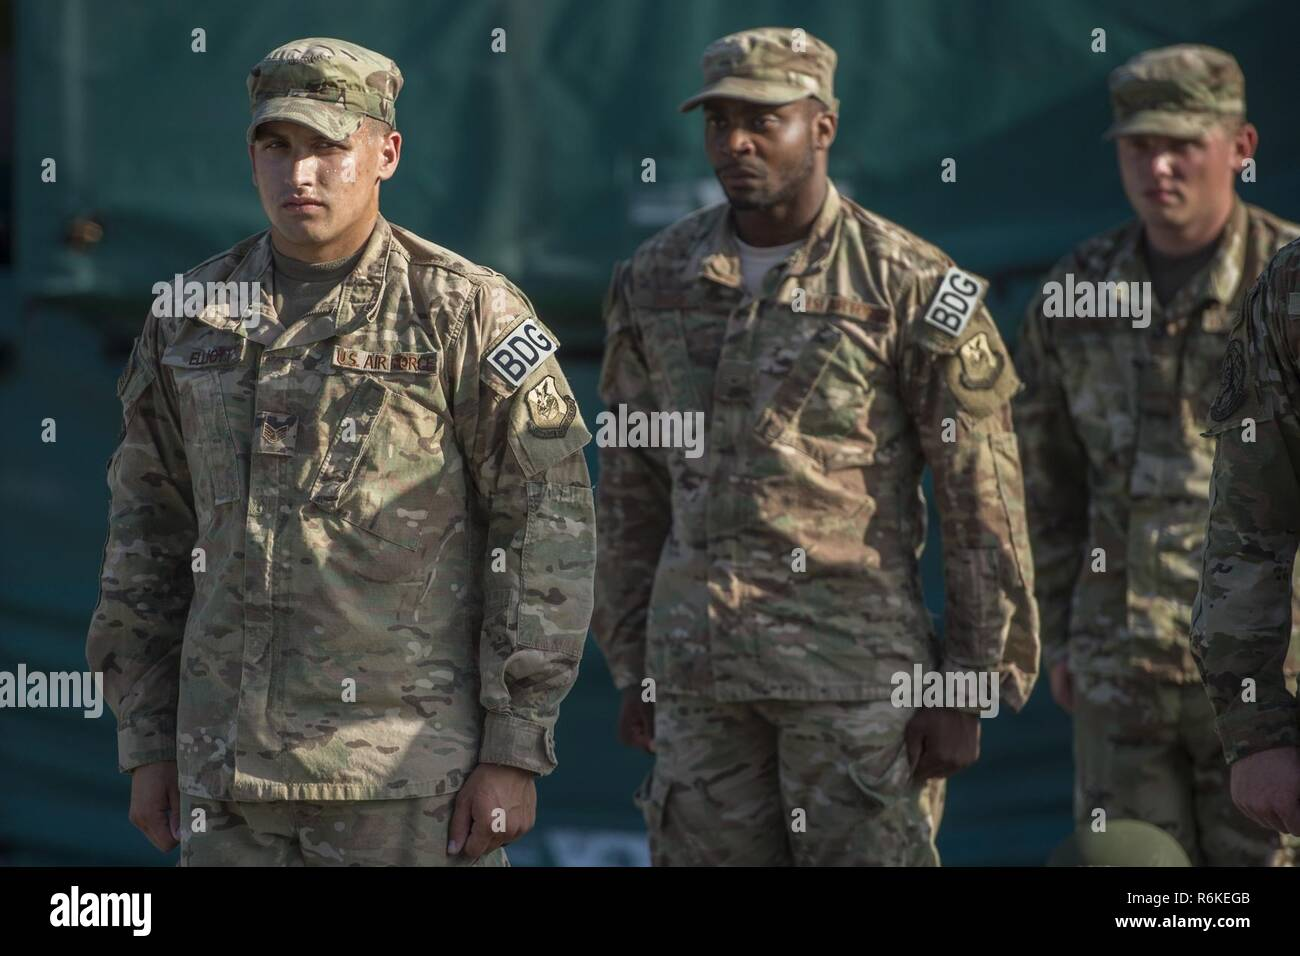 822nd Base Defense Squadron High Resolution Stock Photography And Images Alamy